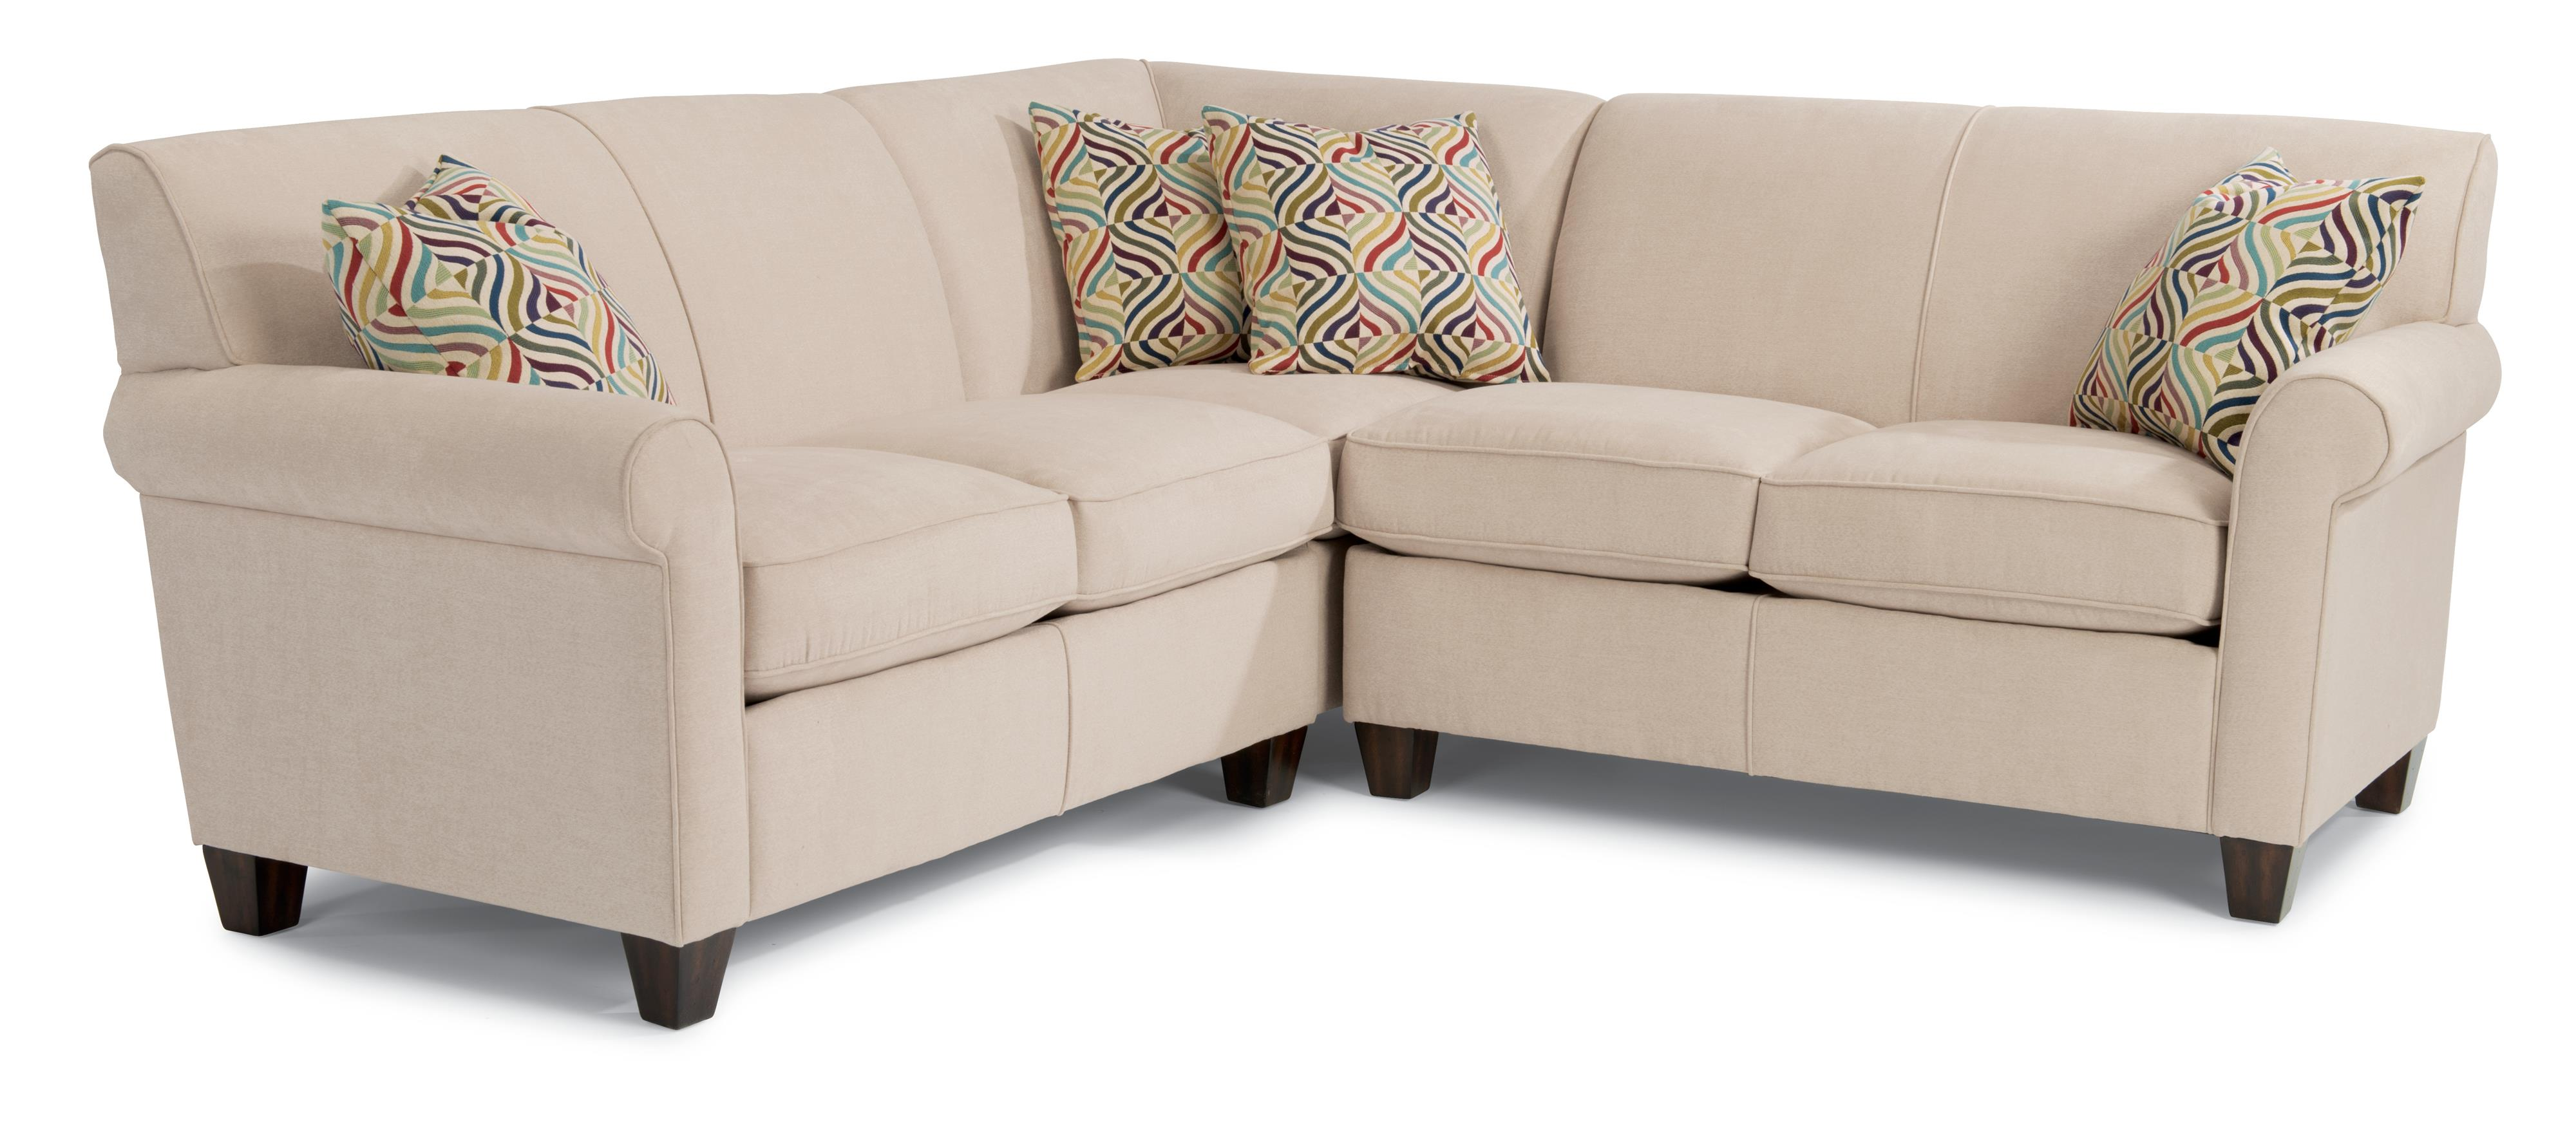 flexsteel sectional sofas futura leather sofa and loveseat dana three piece corner olinde